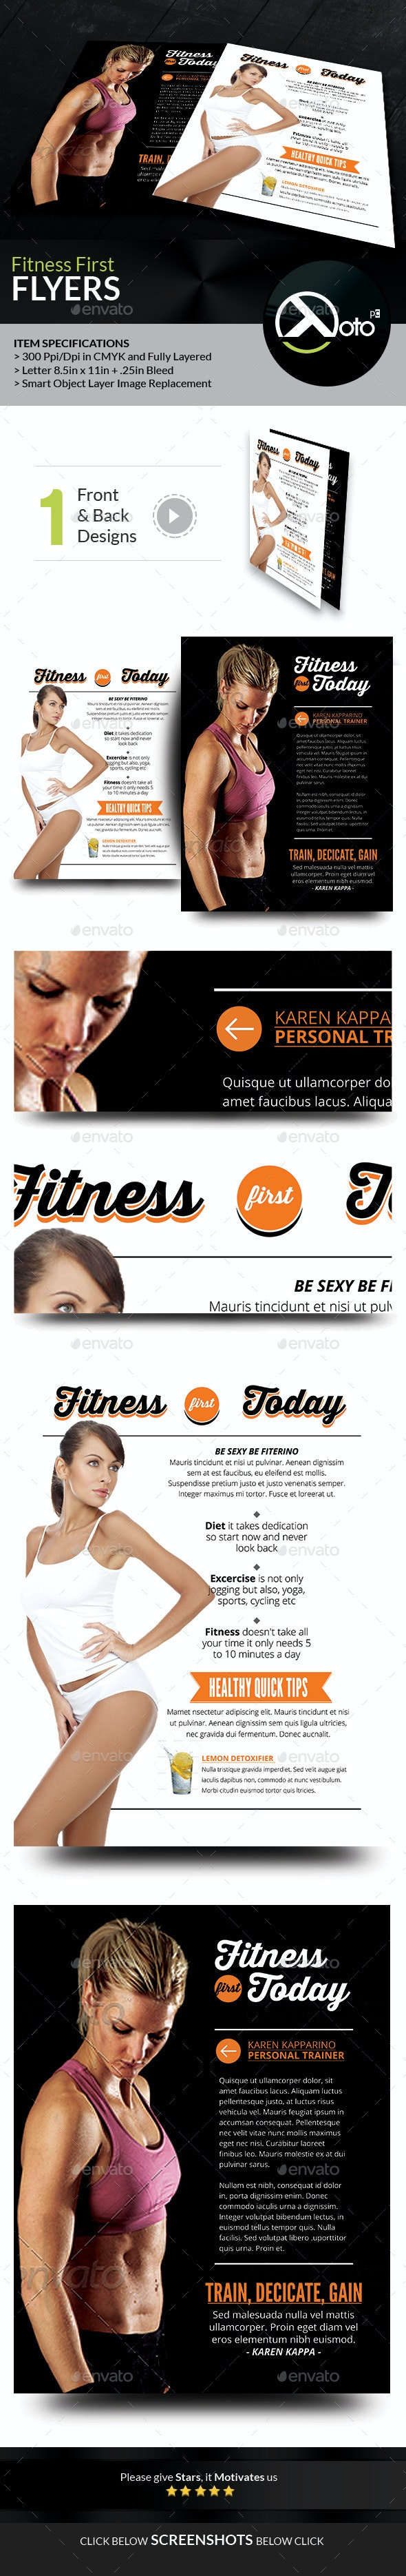 Fitness First Today Health Promotional Flyer - Sports Events